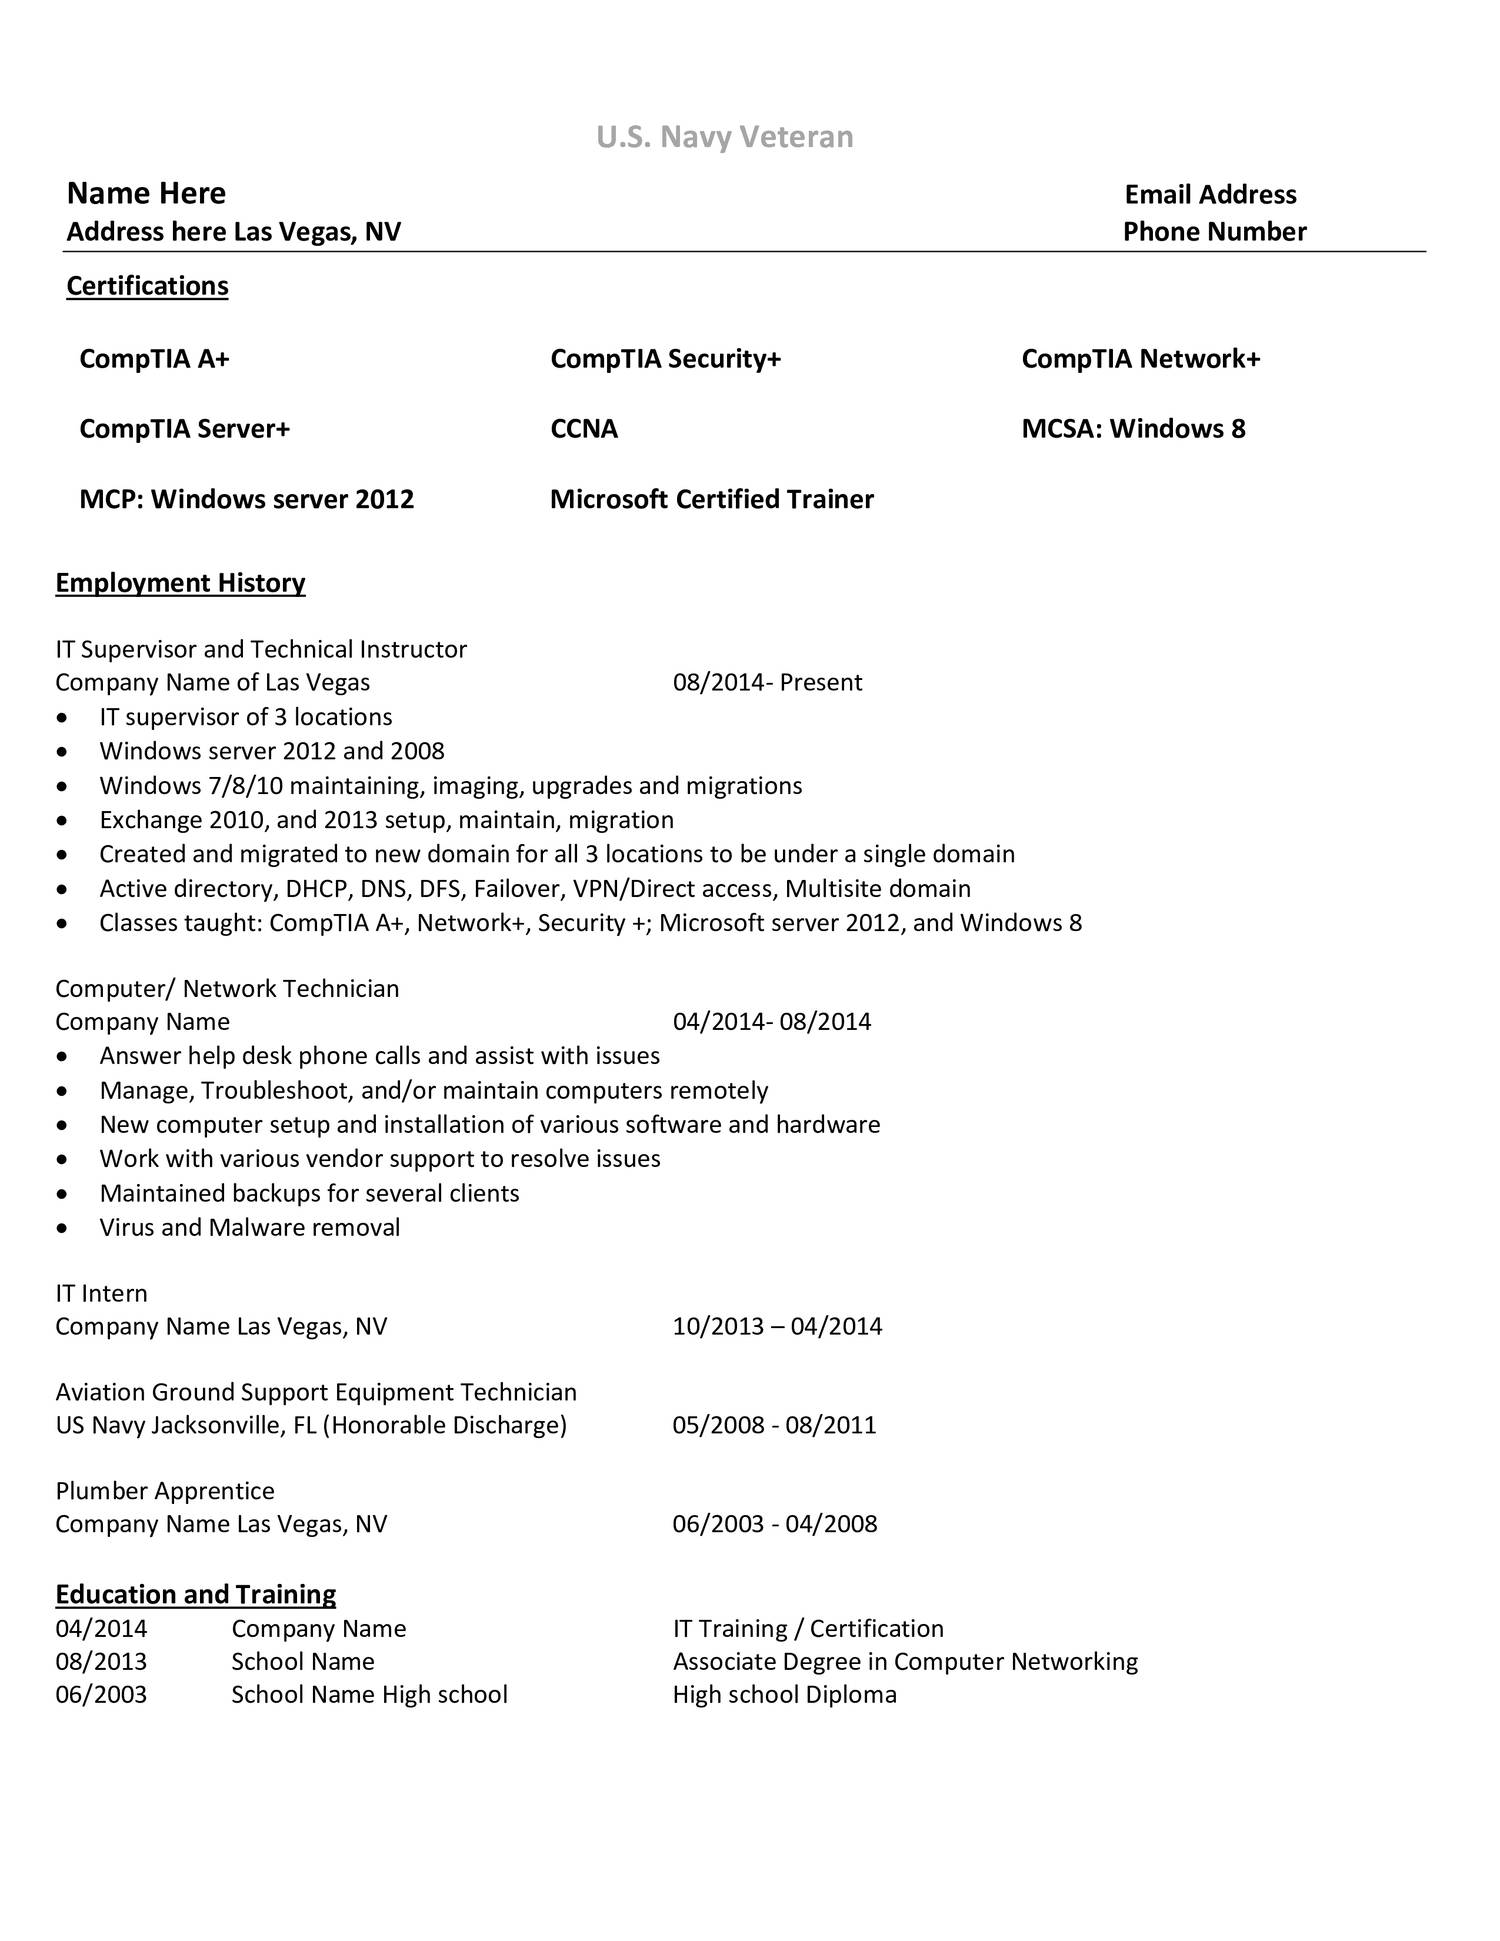 resume pdf or word reddit